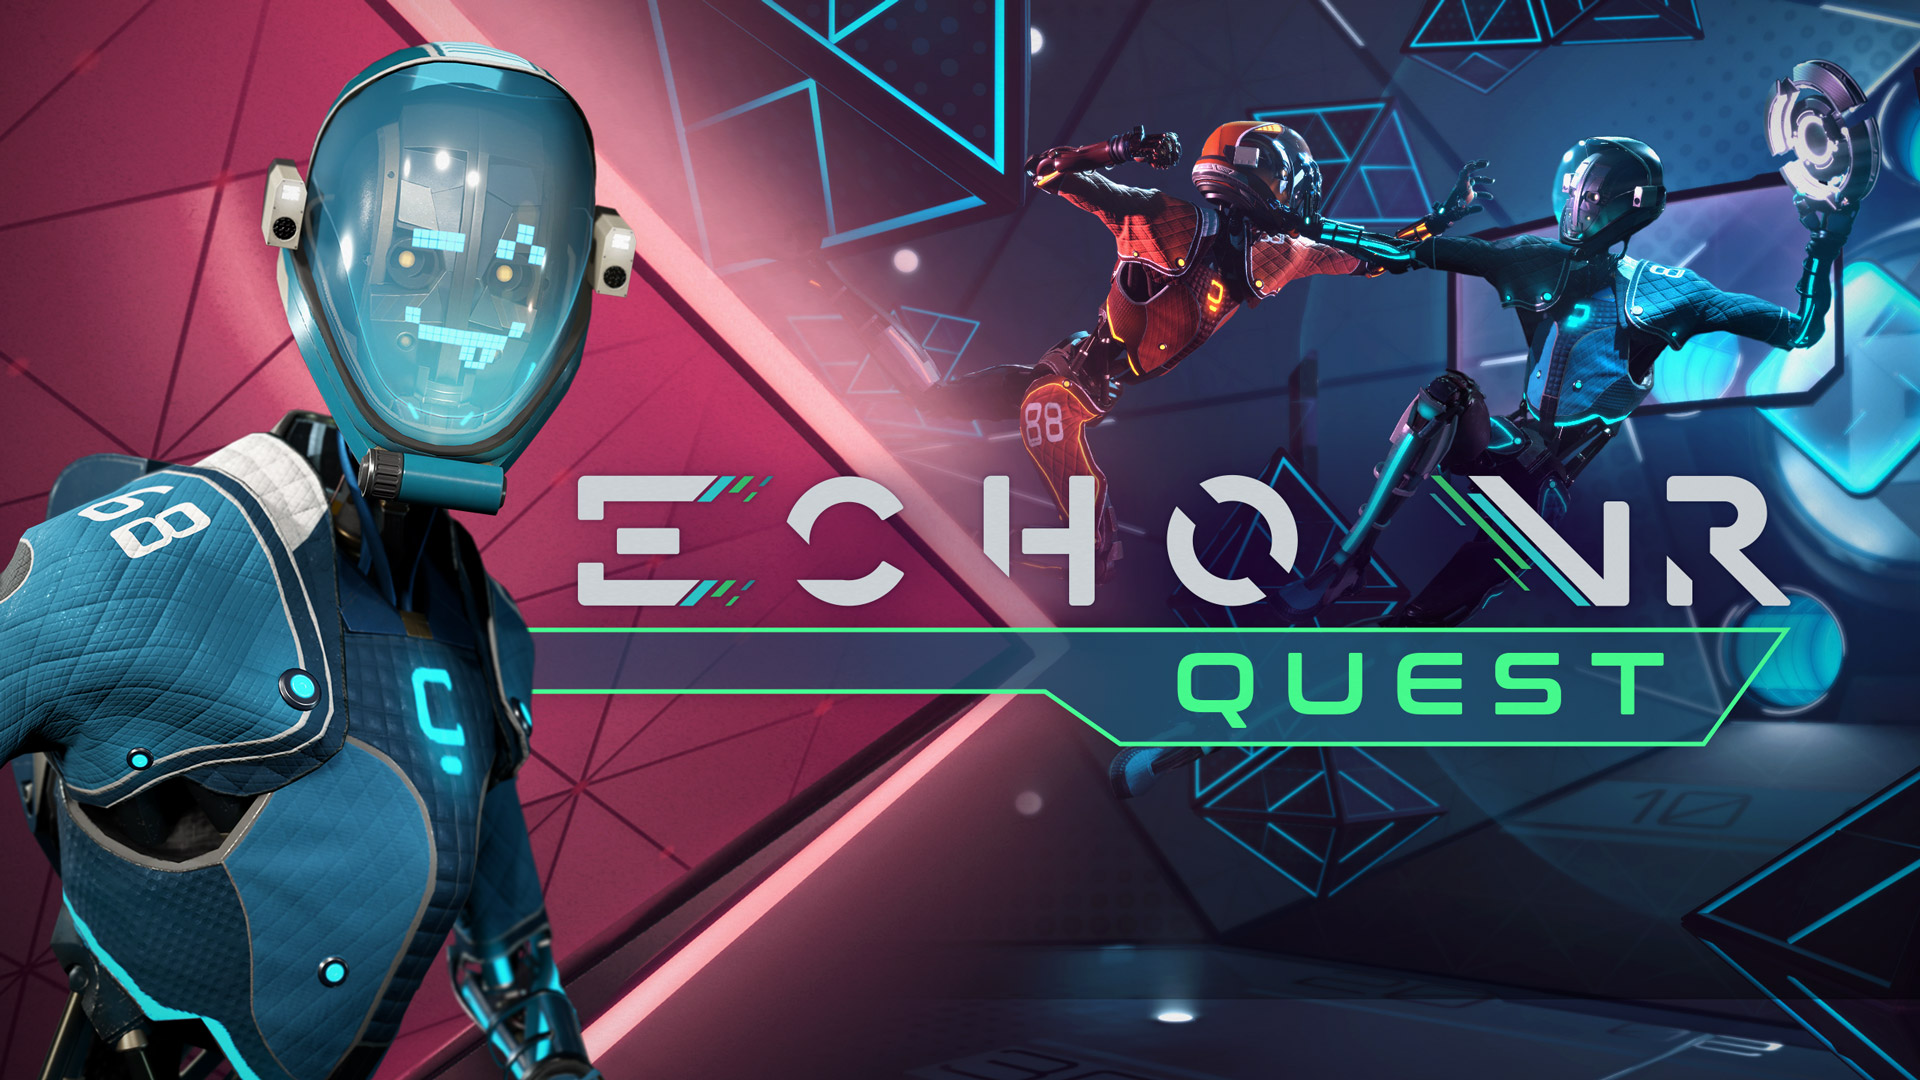 'Echo VR' Update Adds AI Opponents and More Ahead Launch on Quest Later This Year